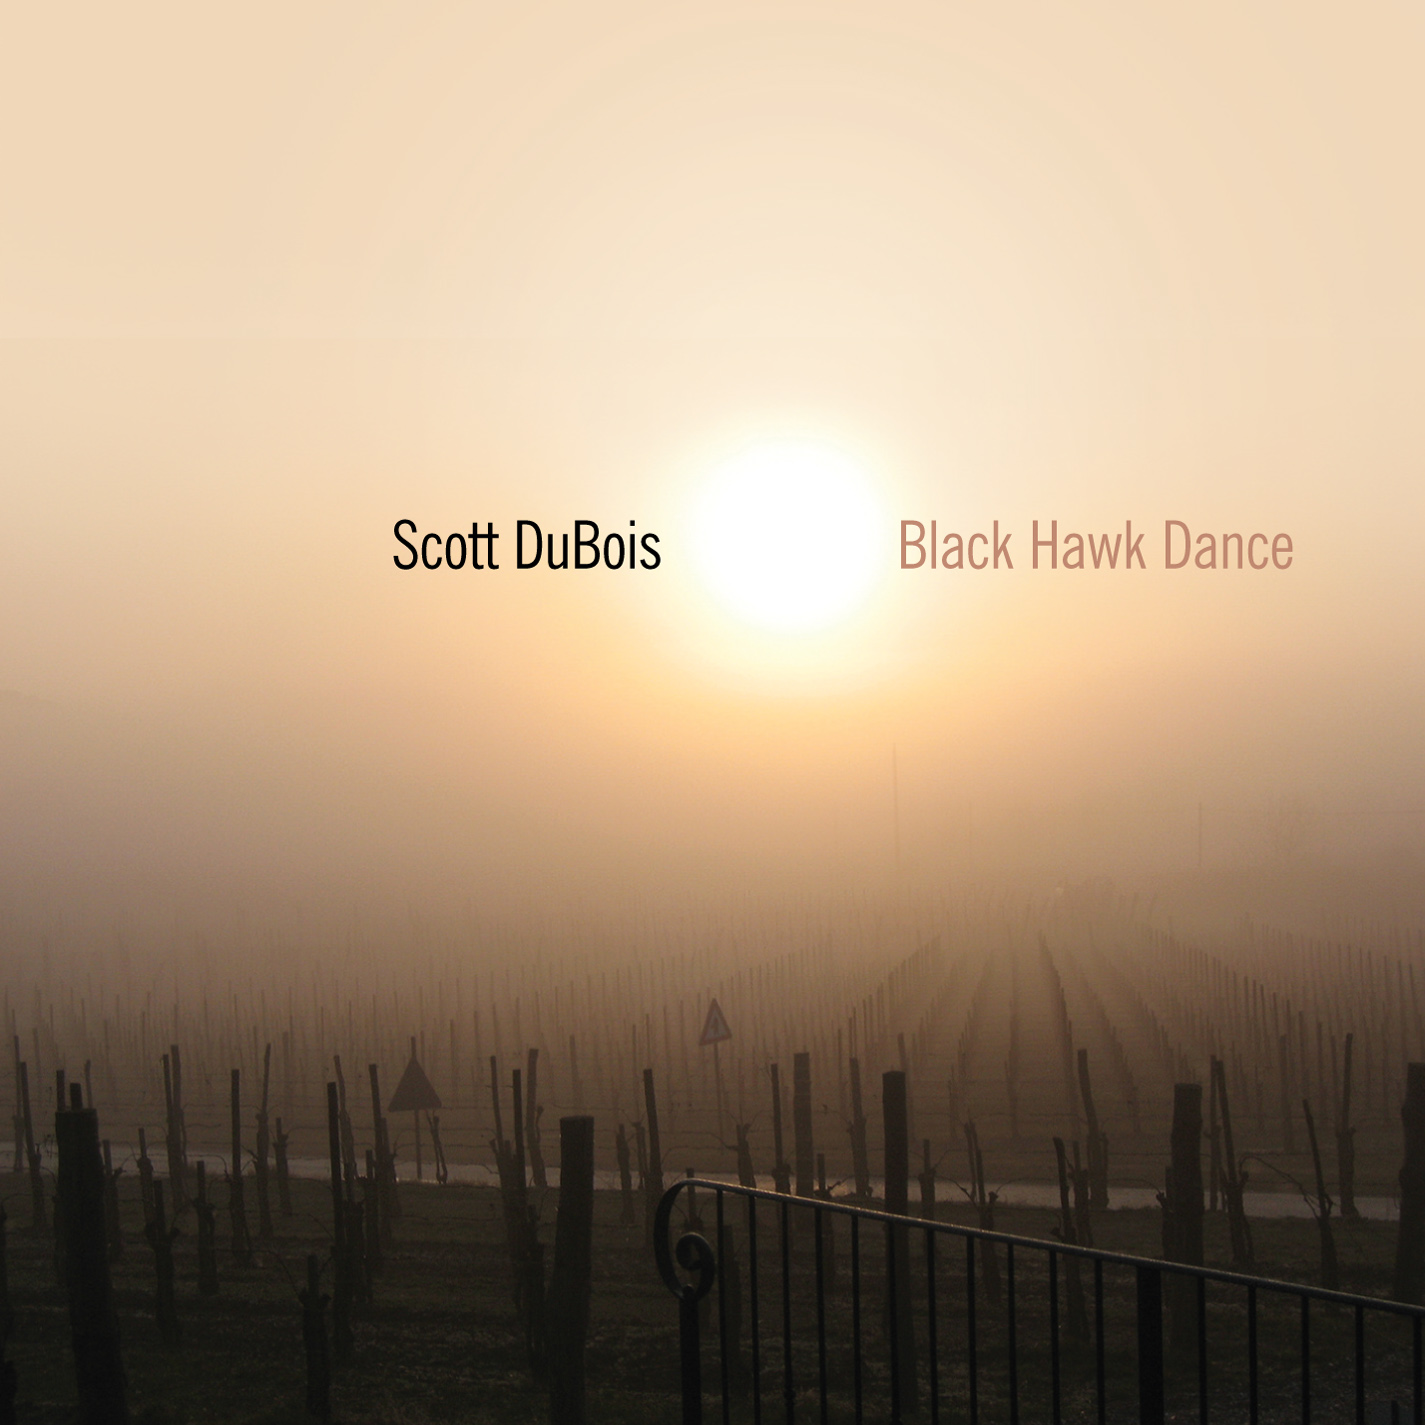 Black Hawk Dance by Scott DuBois cover